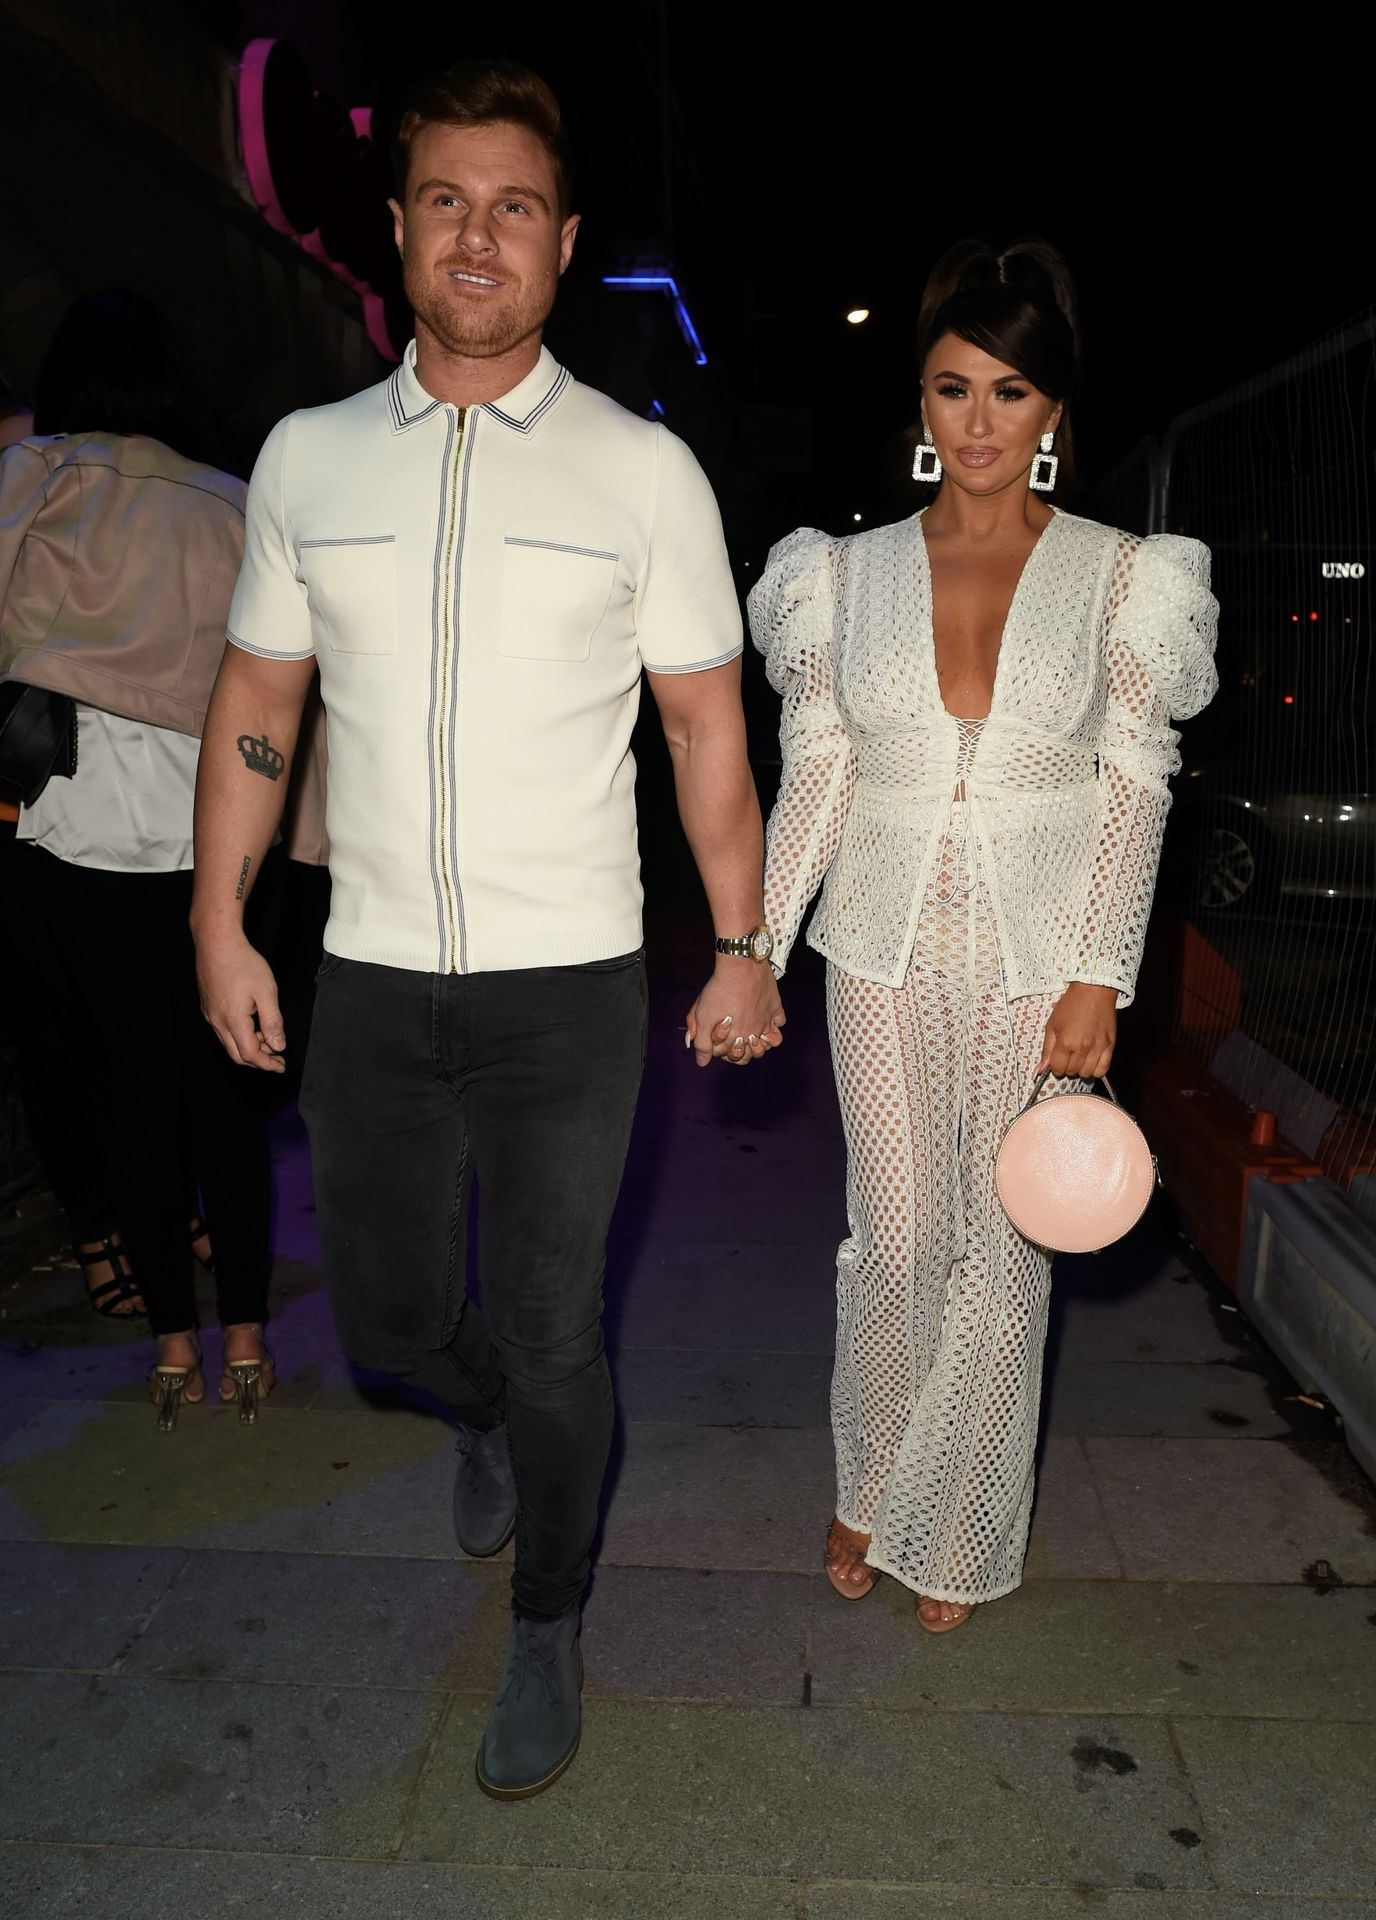 Charlotte Dawson Shows Her Boobs At Avenue Nightclub Launch Party 0018